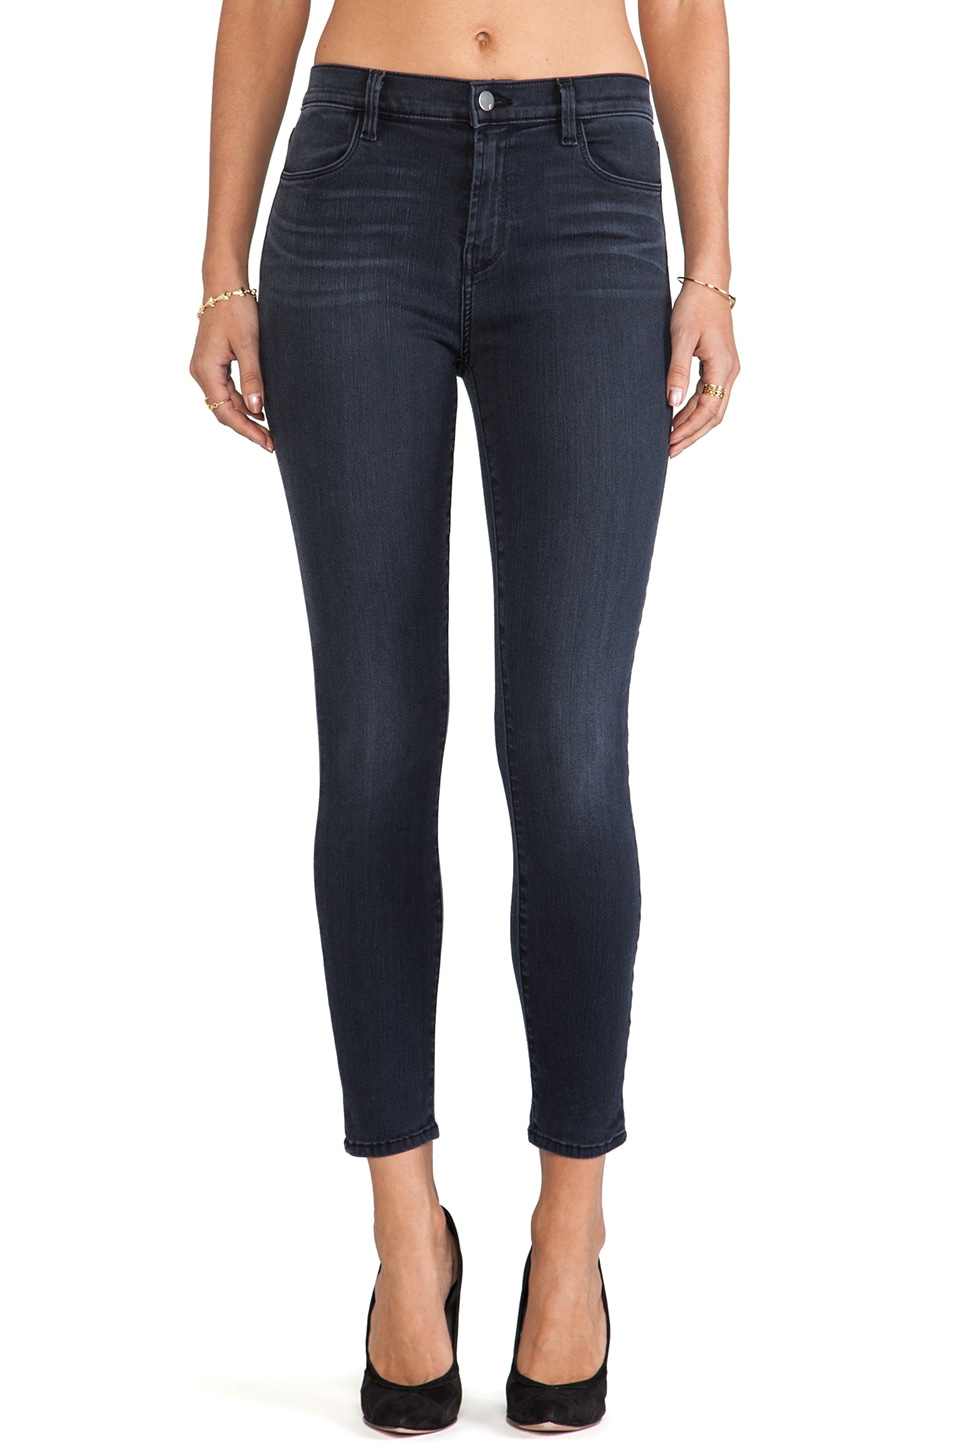 J Brand Alana High Rise Crop in Mystery